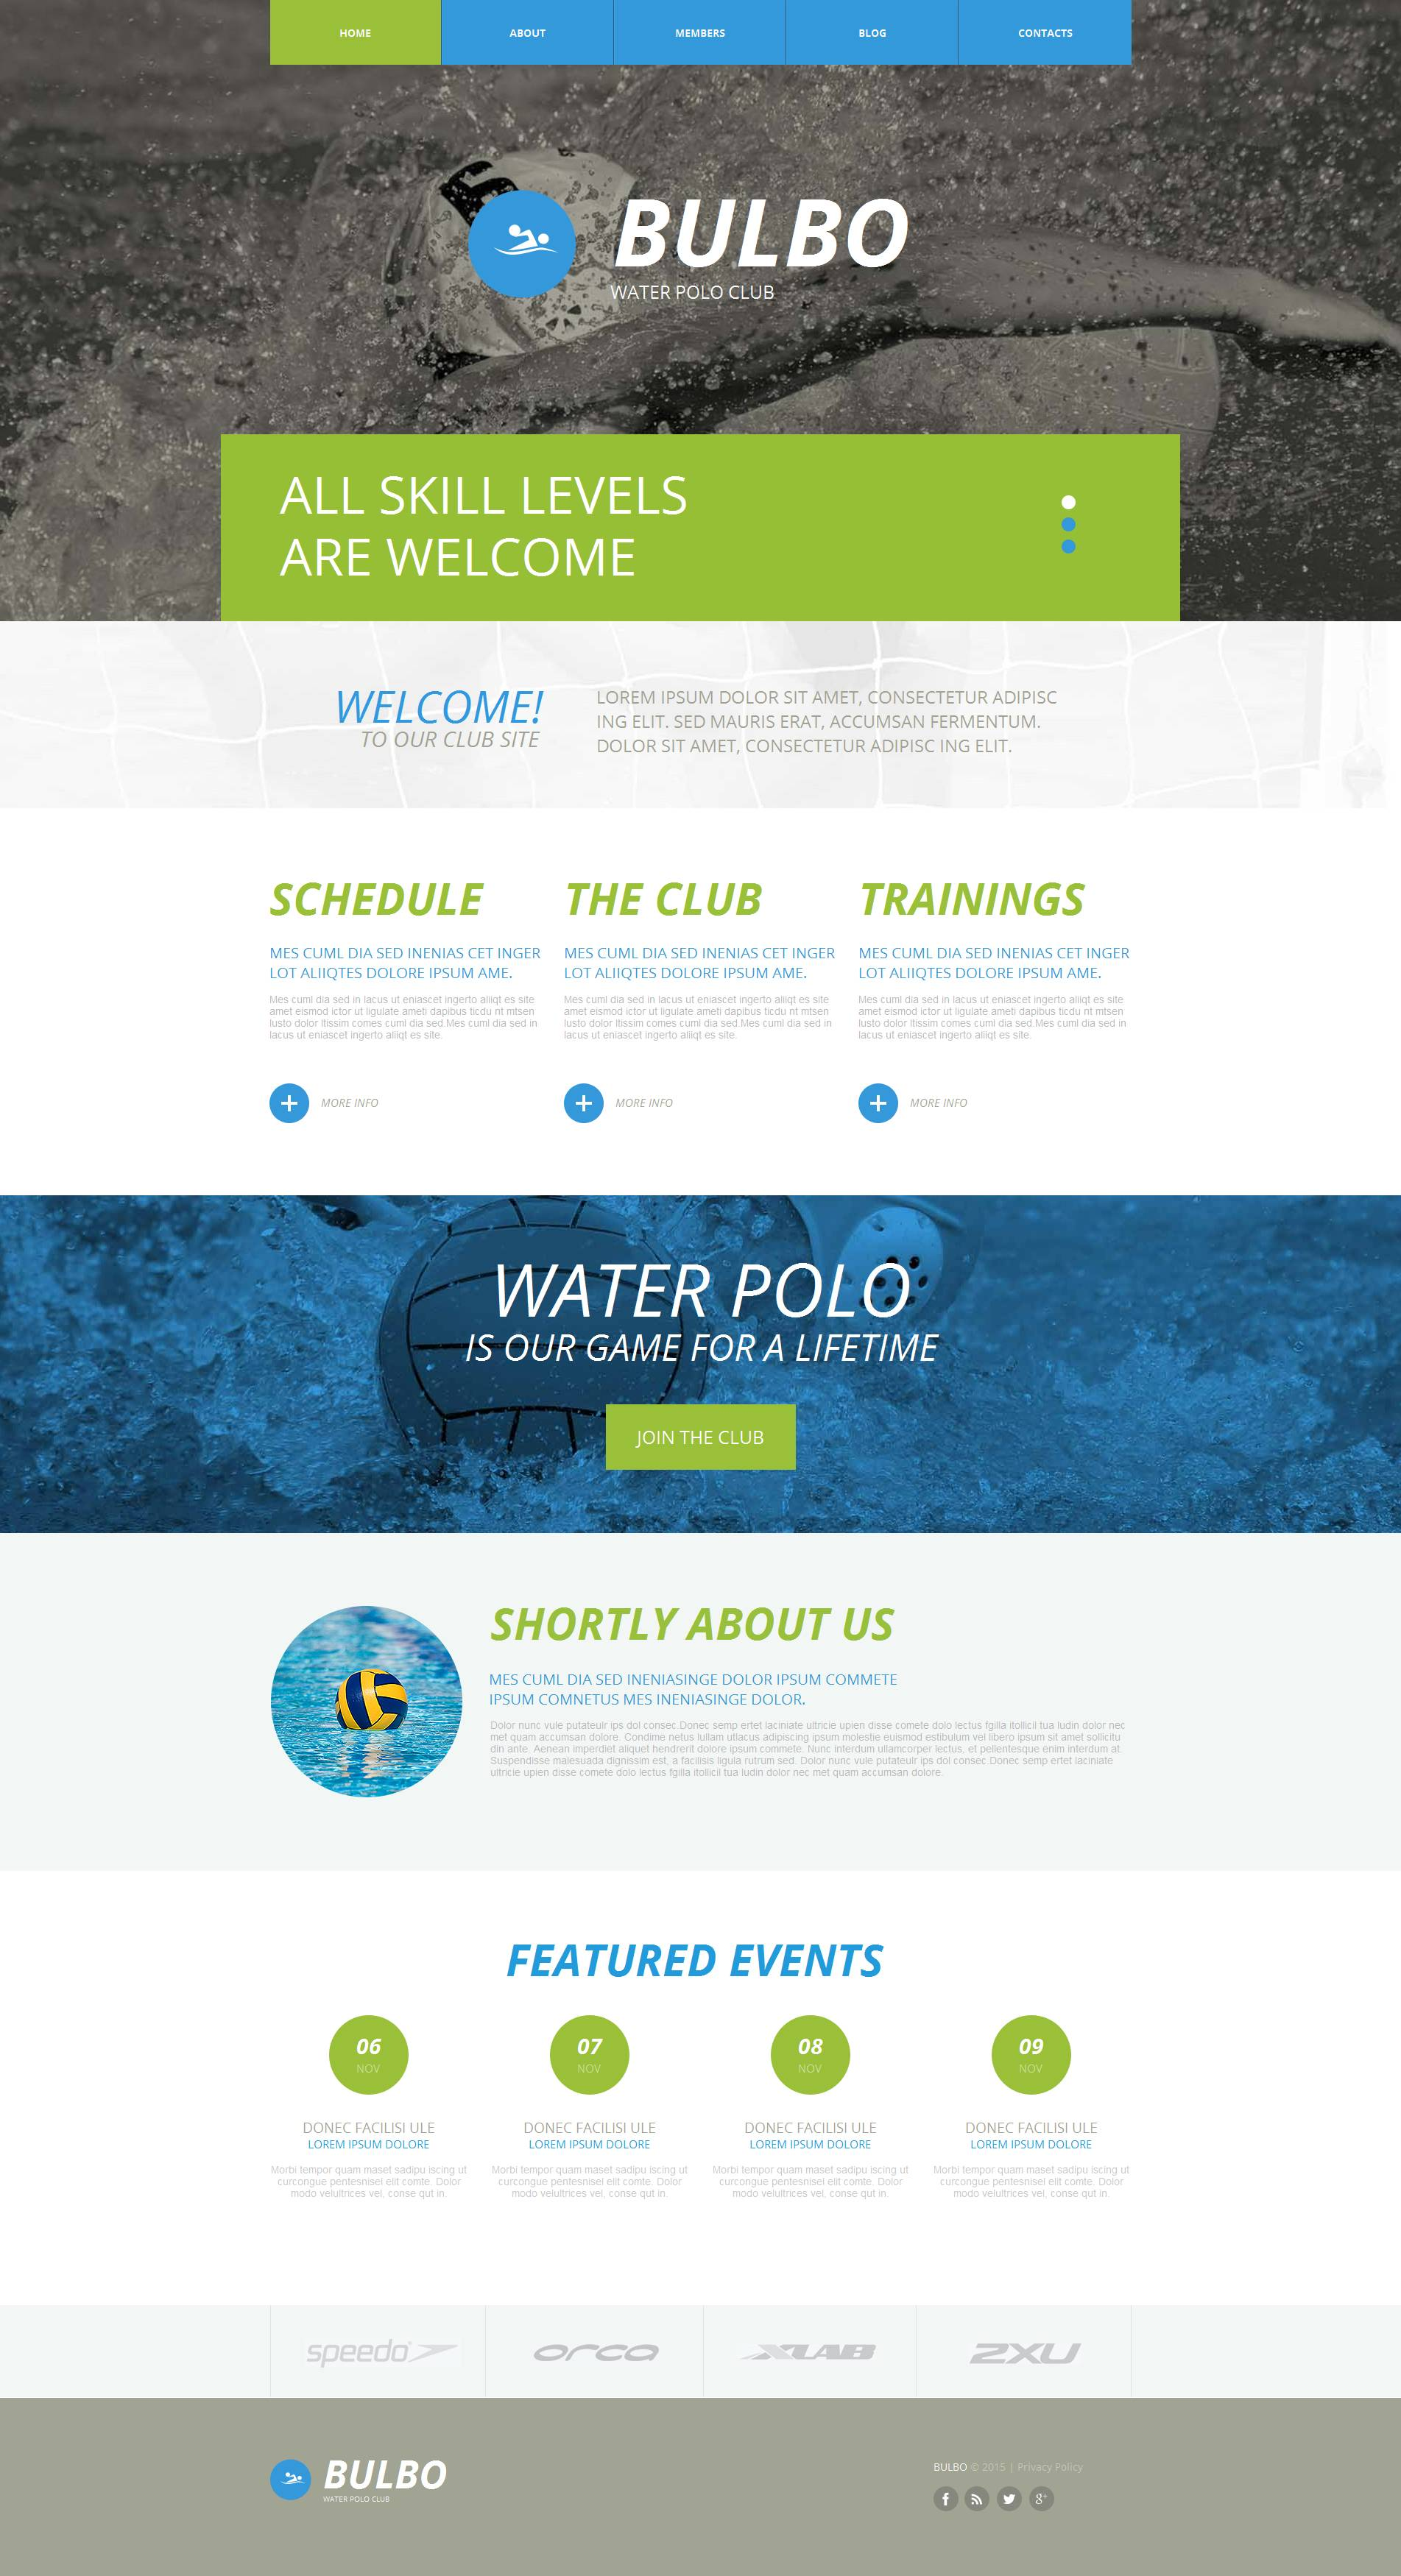 The Bulbo Water Moto CMS HTML Design 53611, one of the best Moto CMS HTML templates of its kind (sport), also known as bulbo water Moto CMS HTML template, polo Moto CMS HTML template, ball Moto CMS HTML template, swimming Moto CMS HTML template, pool Moto CMS HTML template, team Moto CMS HTML template, sport Moto CMS HTML template, sportsman Moto CMS HTML template, swimmer Moto CMS HTML template, game Moto CMS HTML template, swim Moto CMS HTML template, play Moto CMS HTML template, player Moto CMS HTML template, goal and related with bulbo water, polo, ball, swimming, pool, team, sport, sportsman, swimmer, game, swim, play, player, goal, etc.